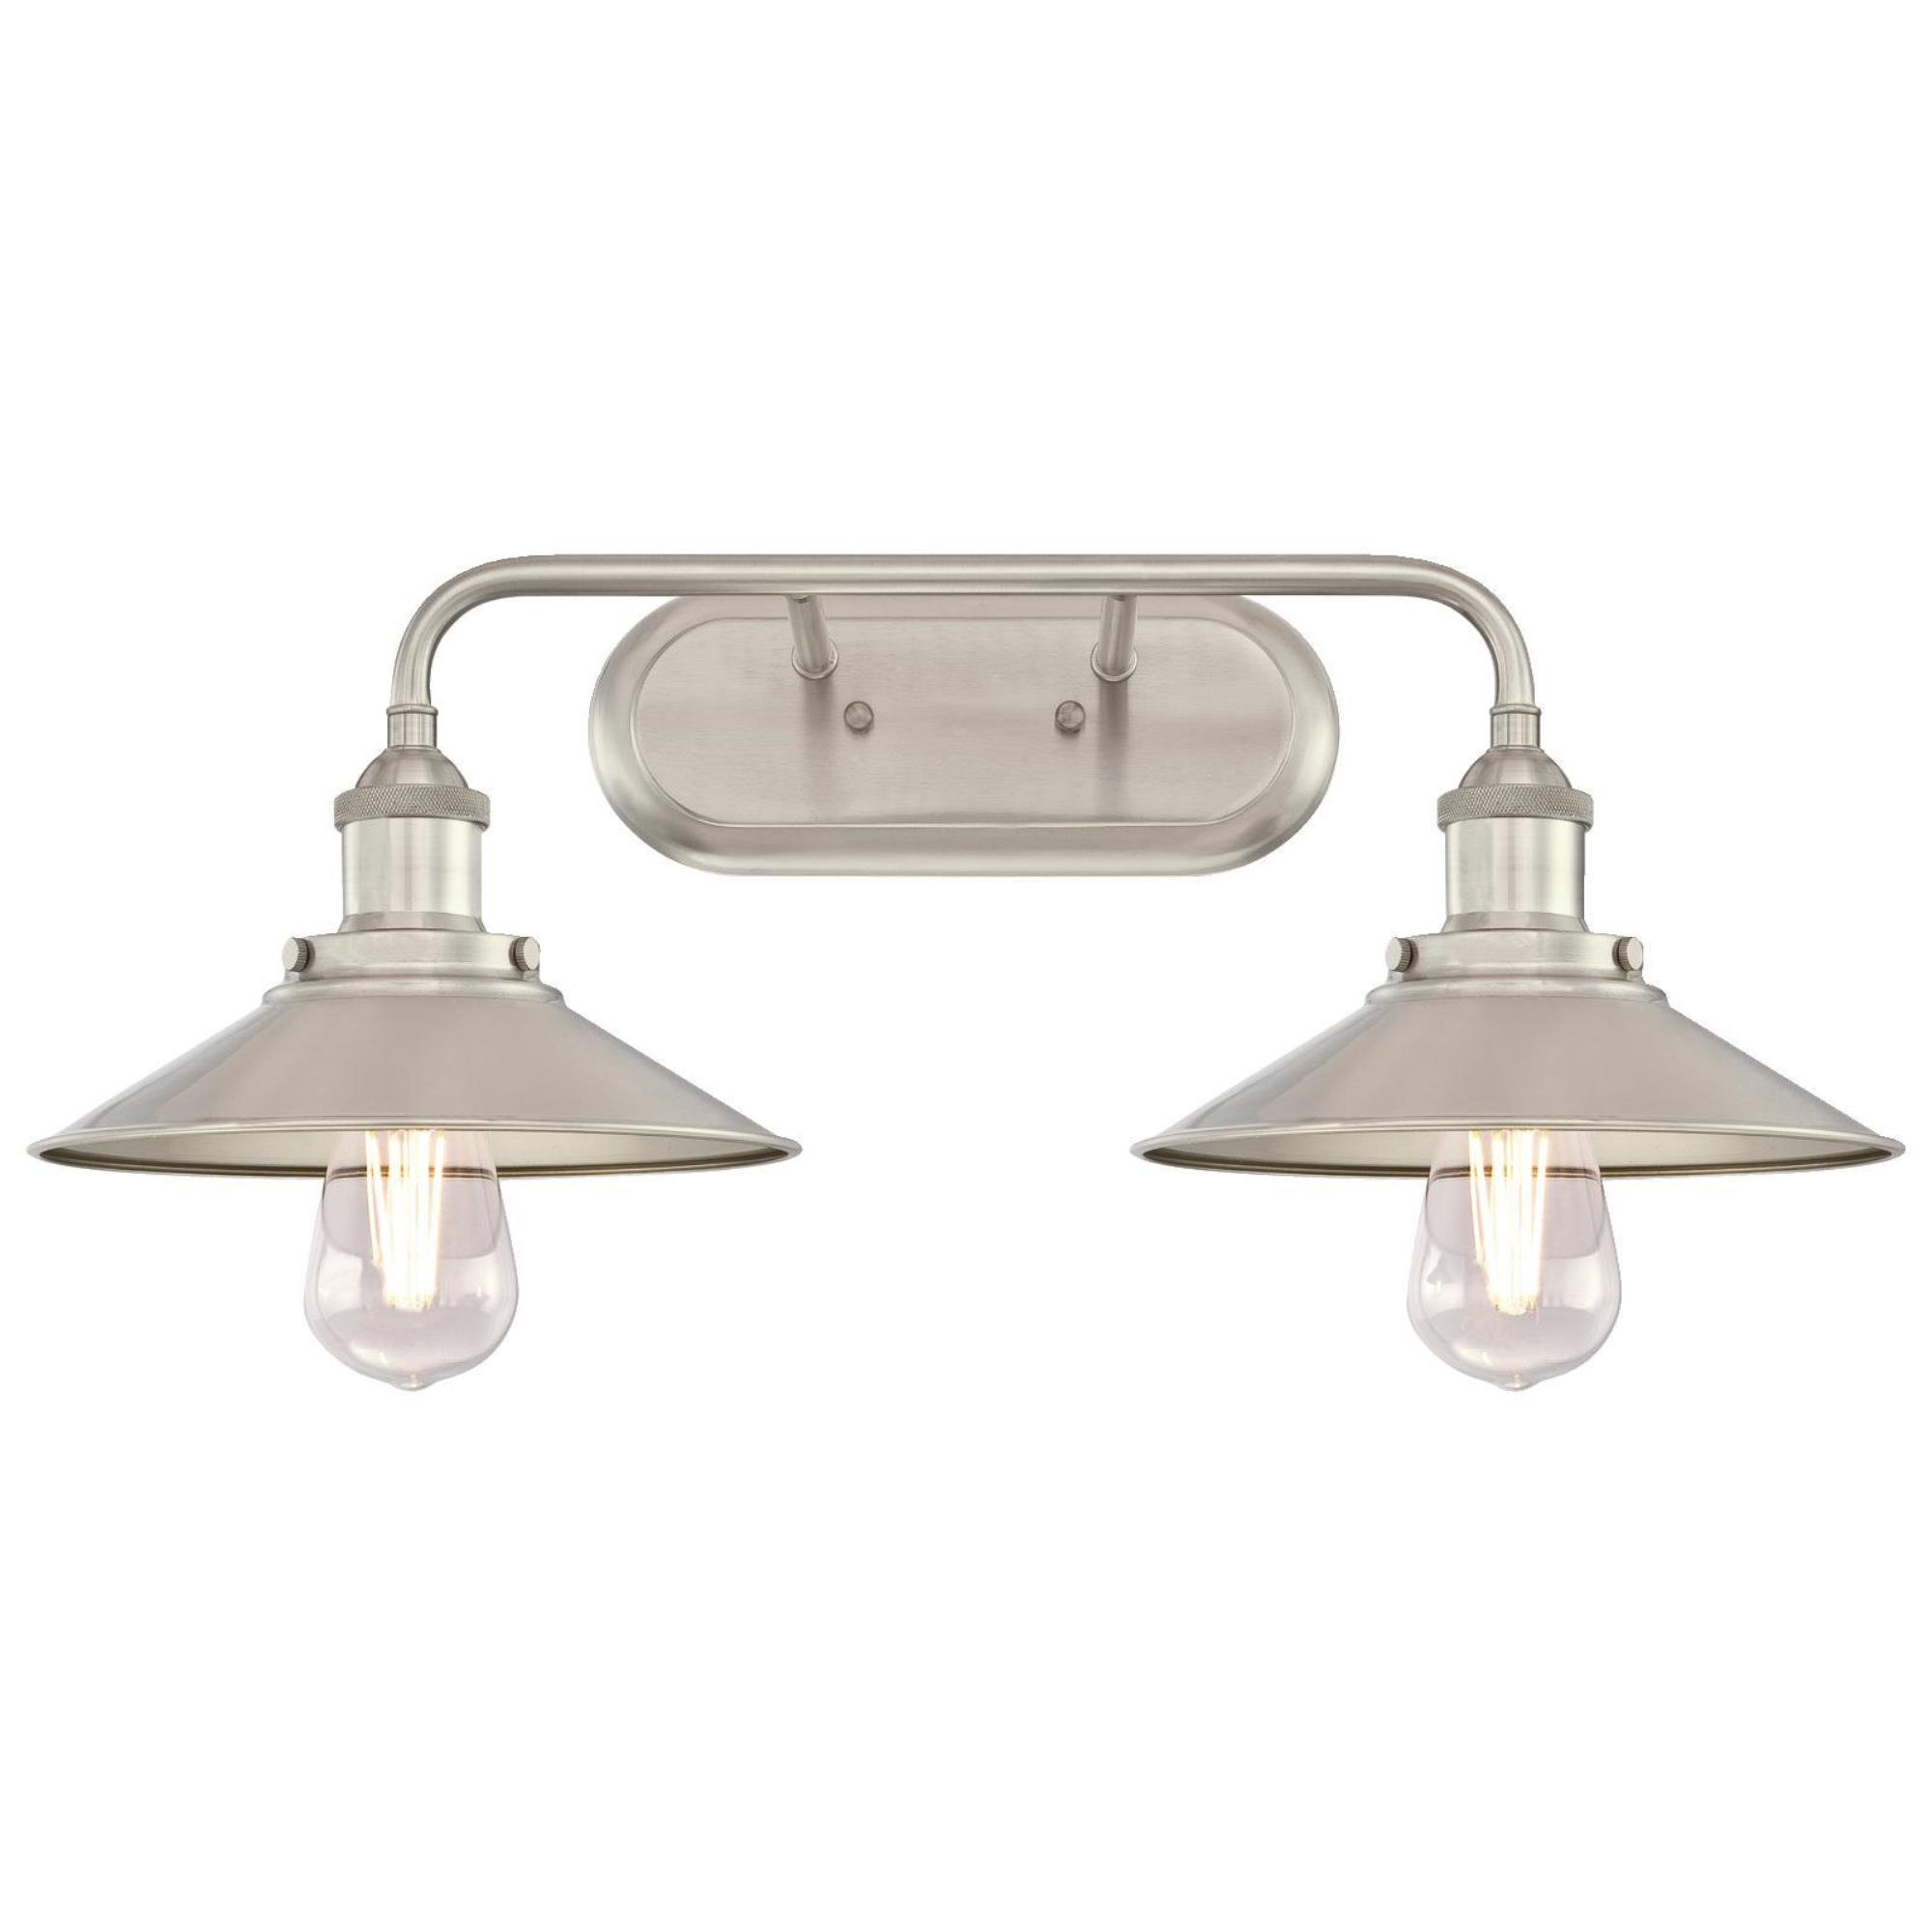 Westinghouse Lighting 6336300 Maggie Two-Light Indoor Wall Fixture, Brushed Nickel Finish 2